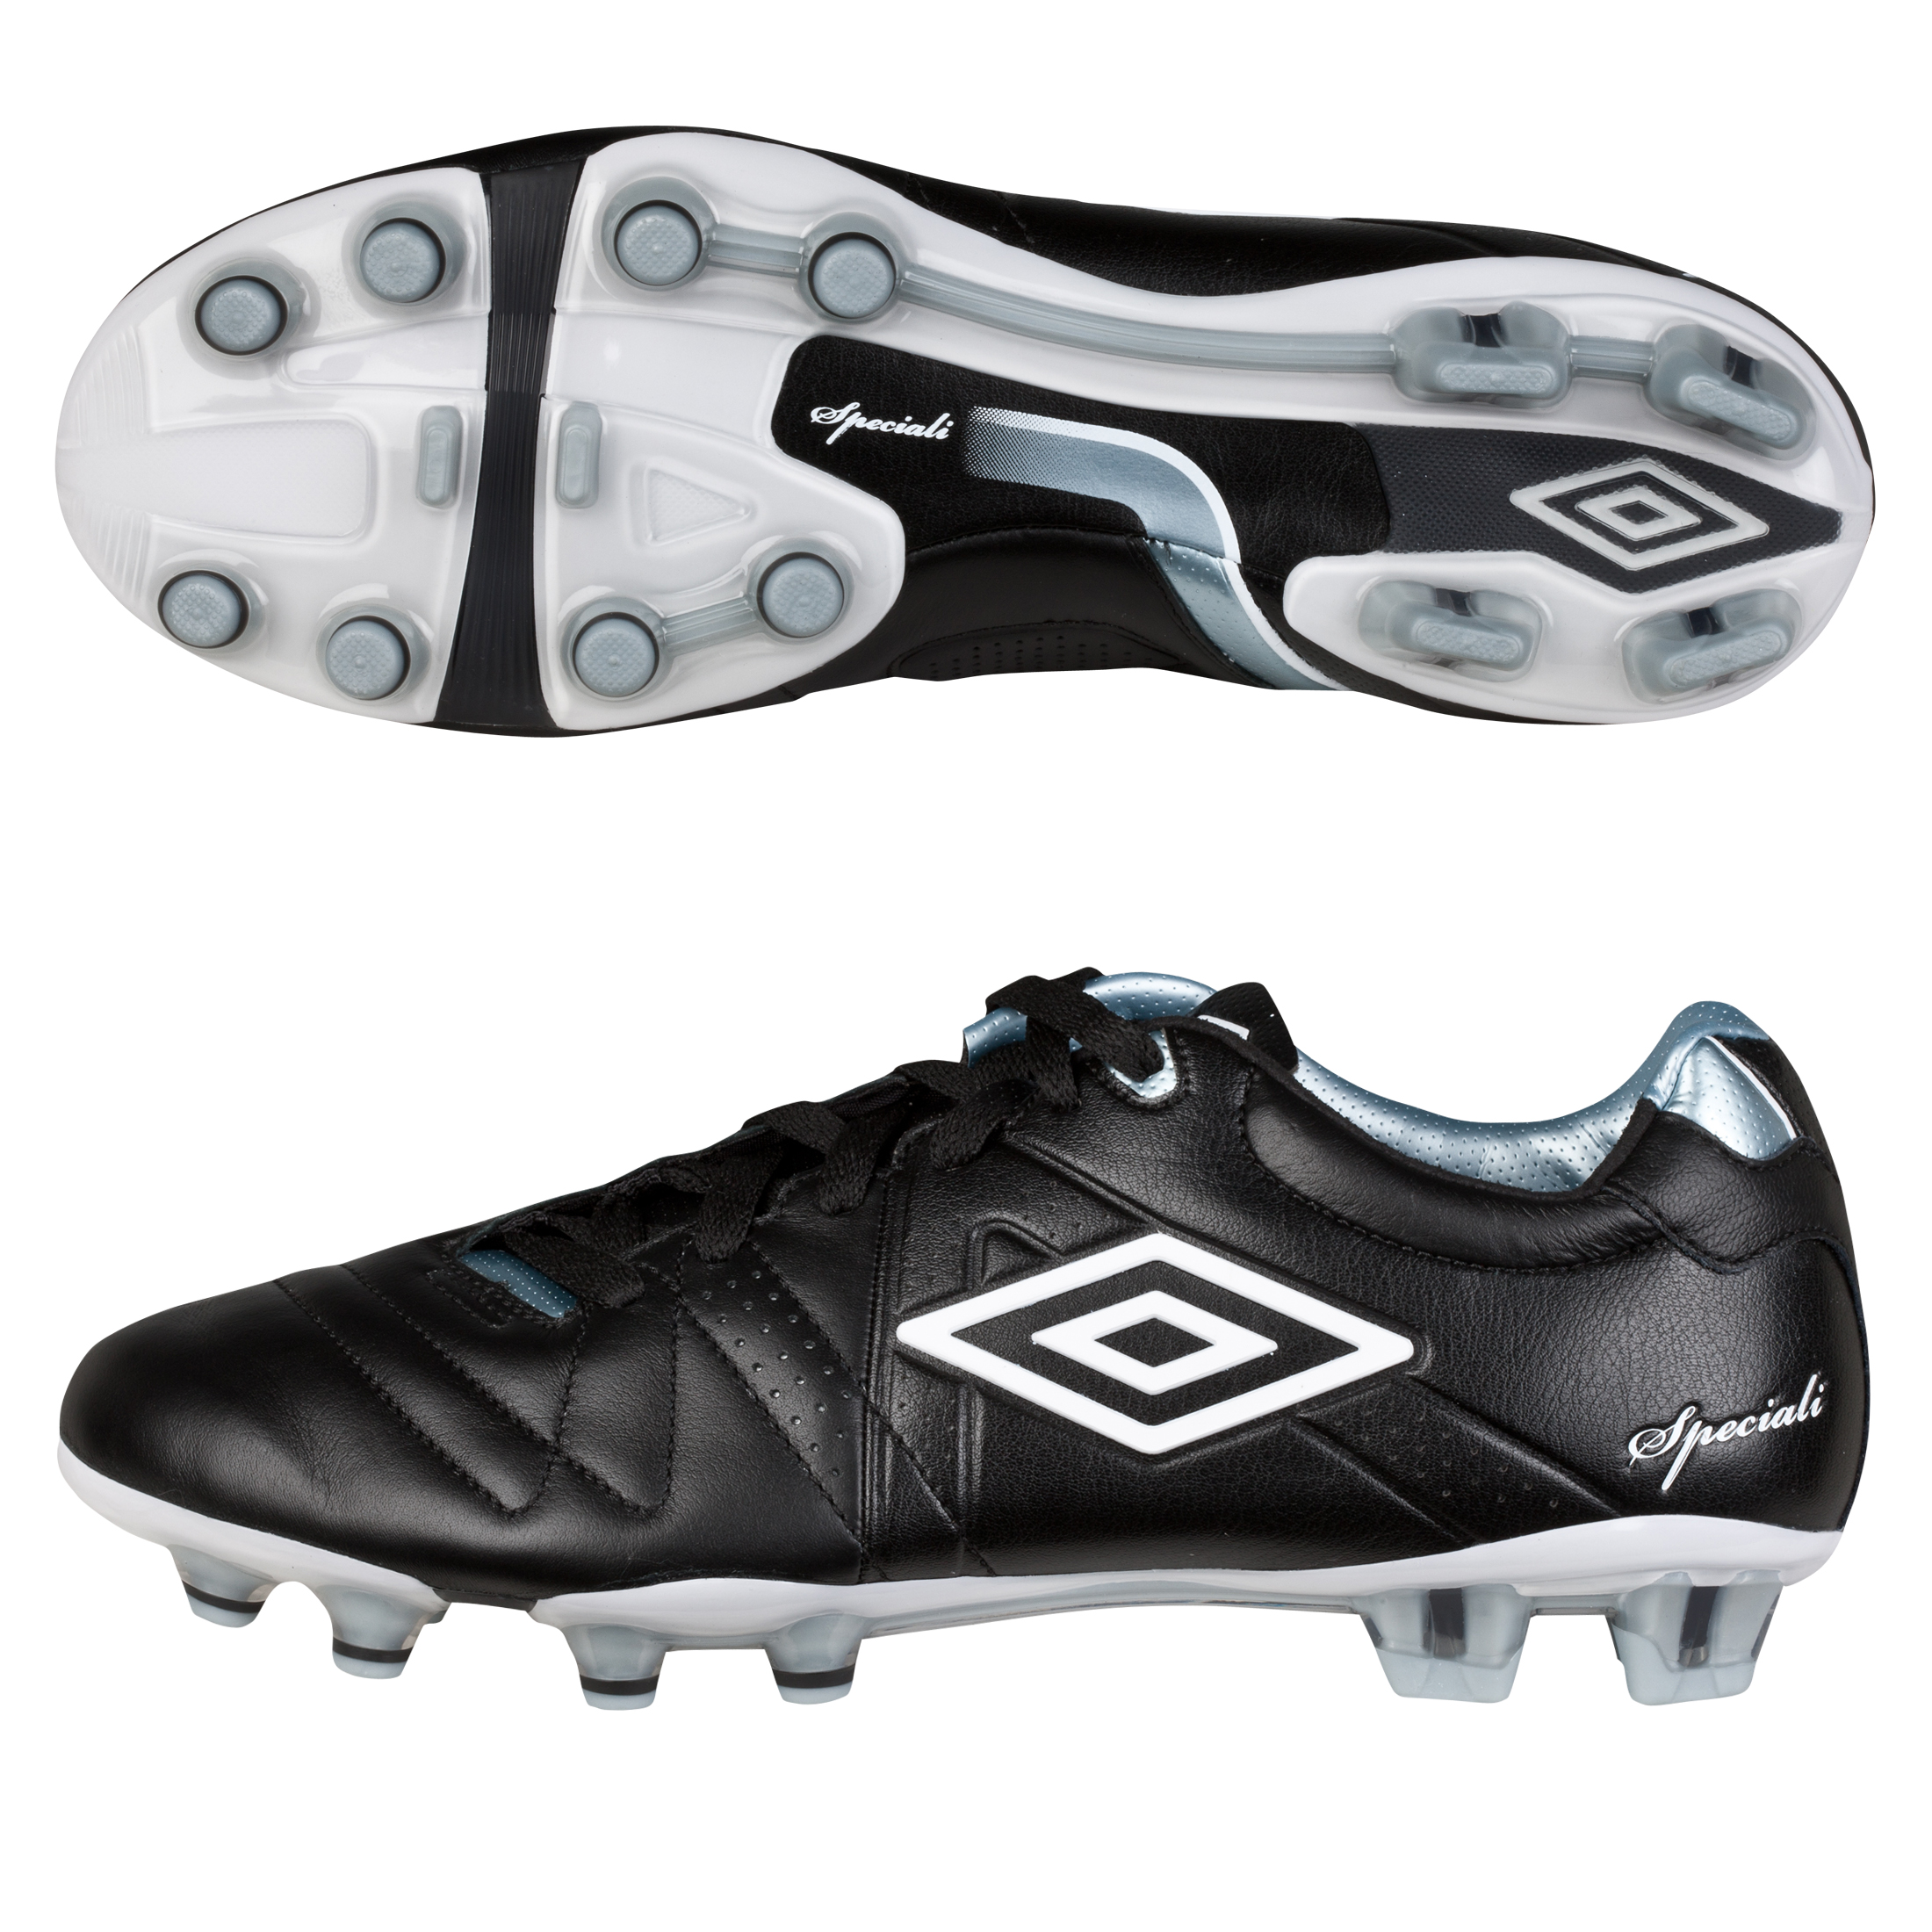 Speciali 3 Pro HG Black/White/Chrome